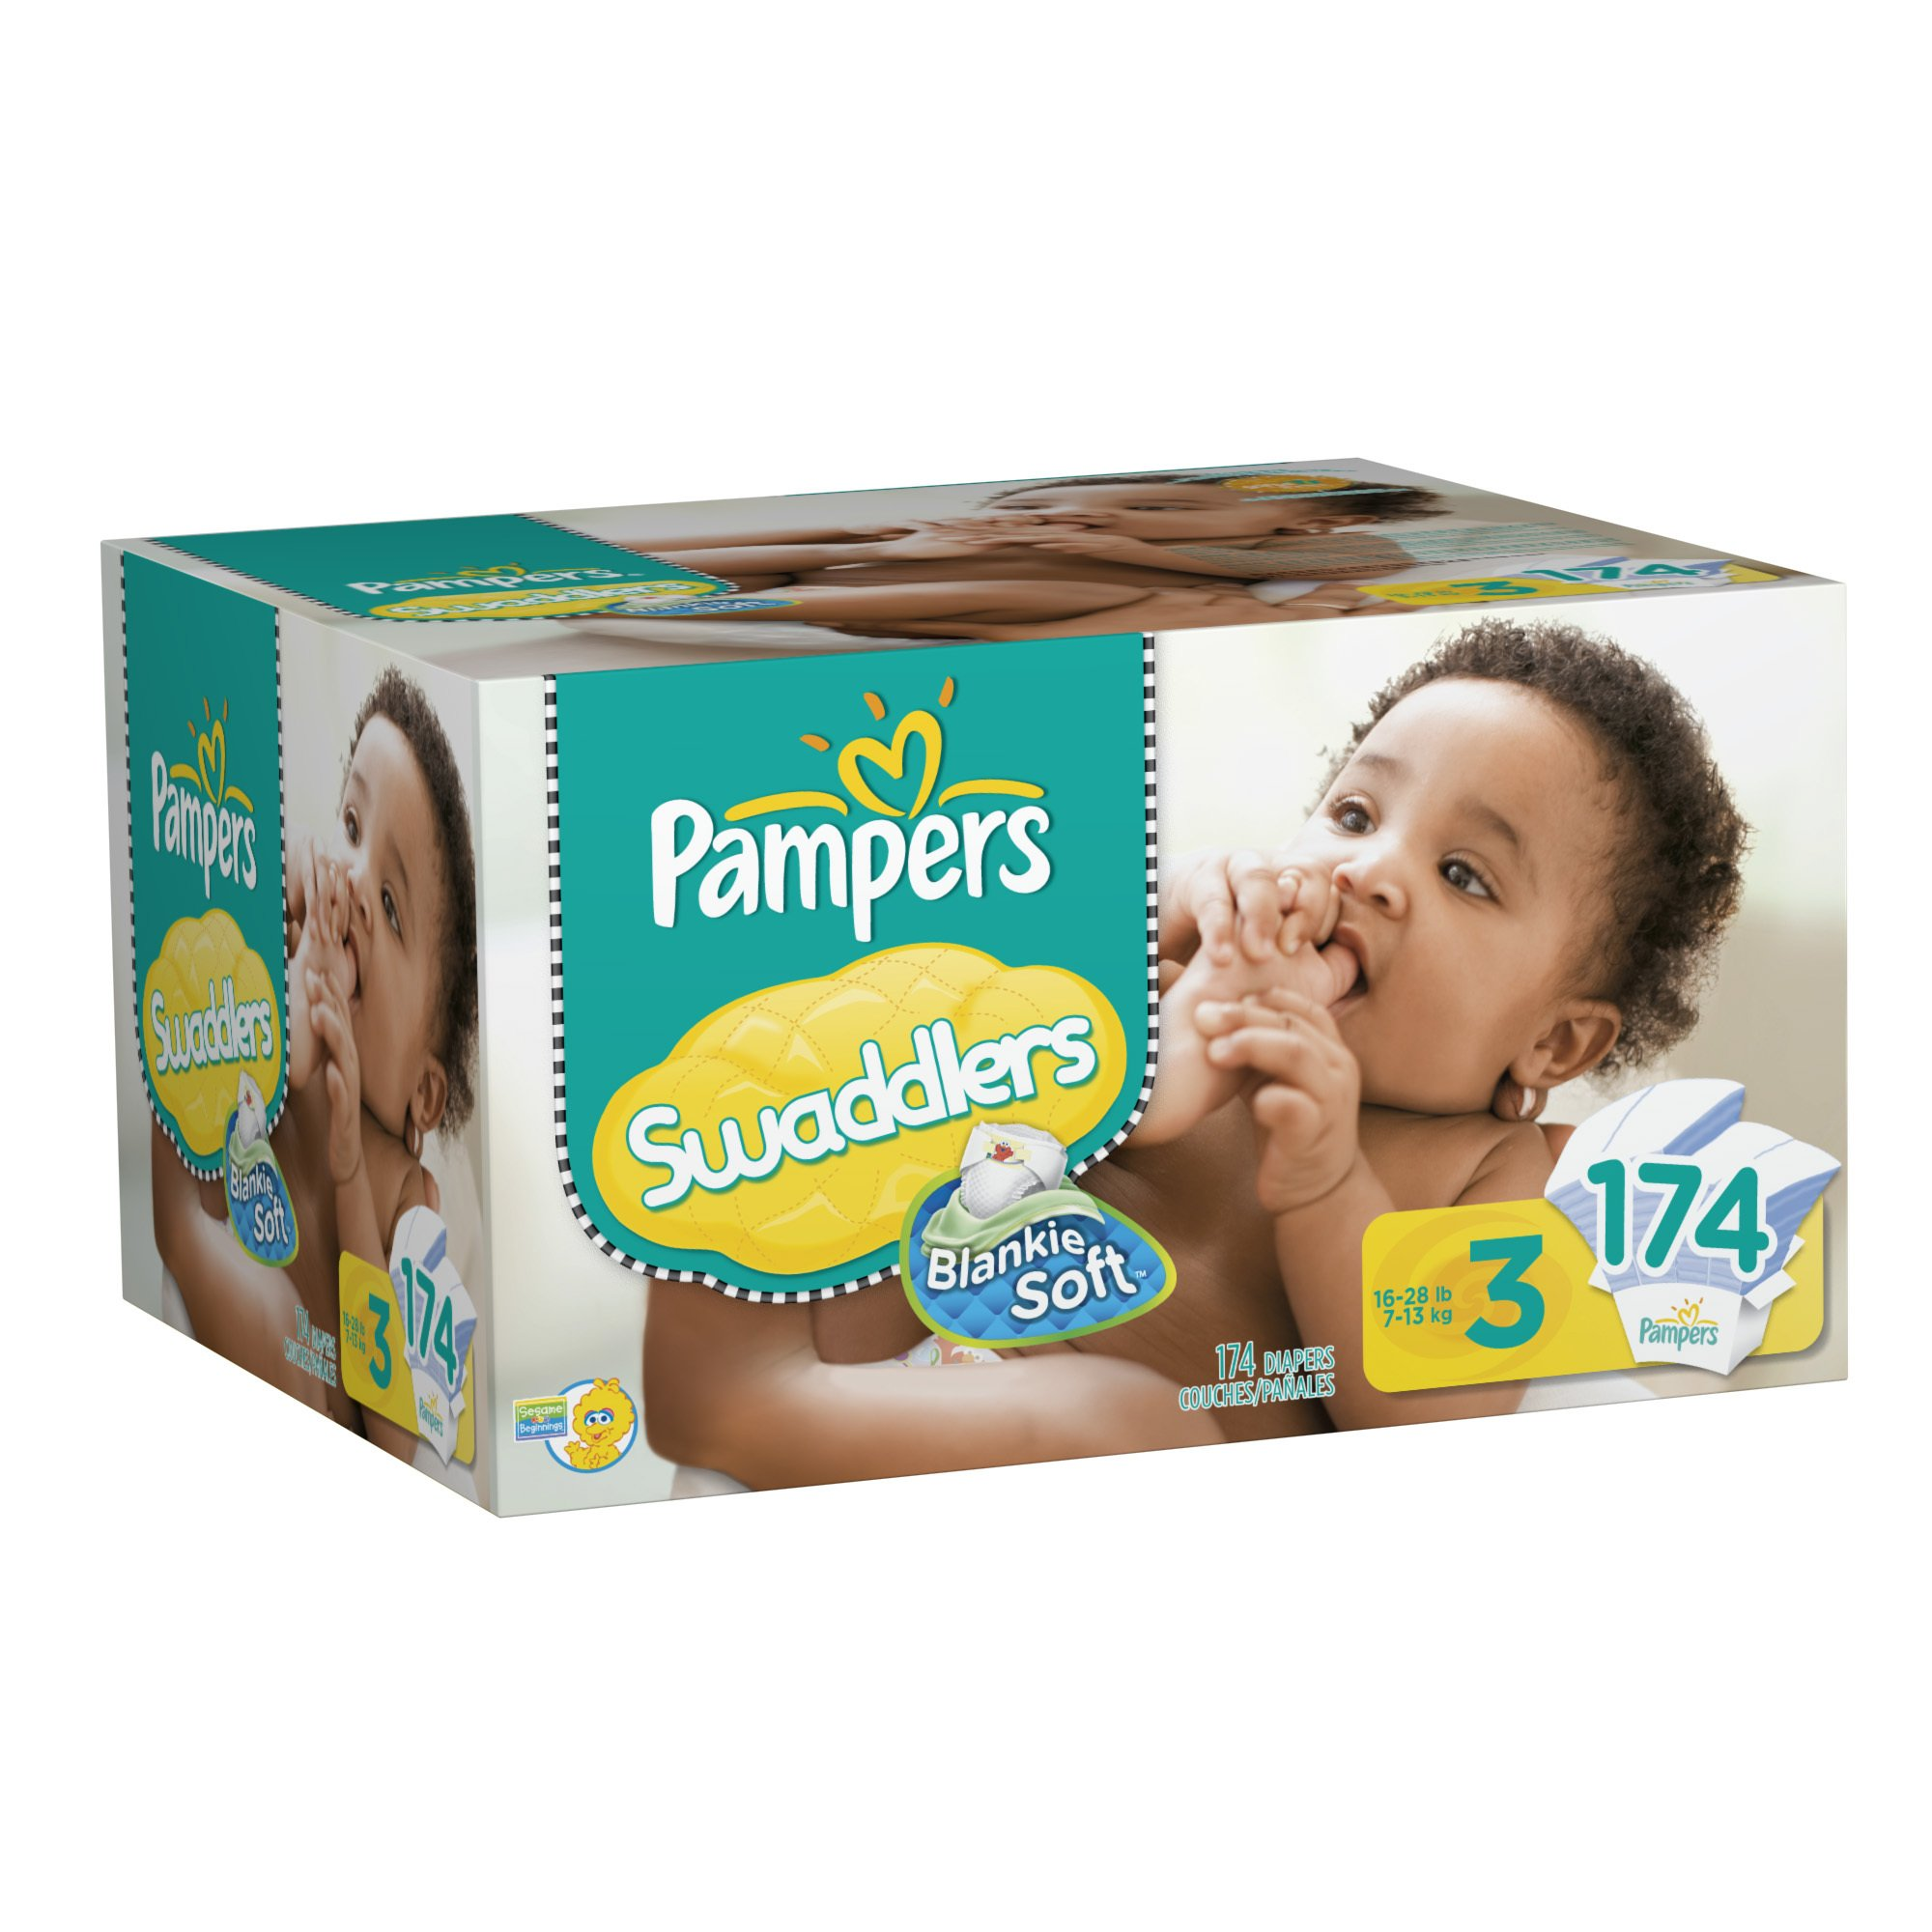 Pampers Swaddlers Diapers, Size 3, 174 Count product image